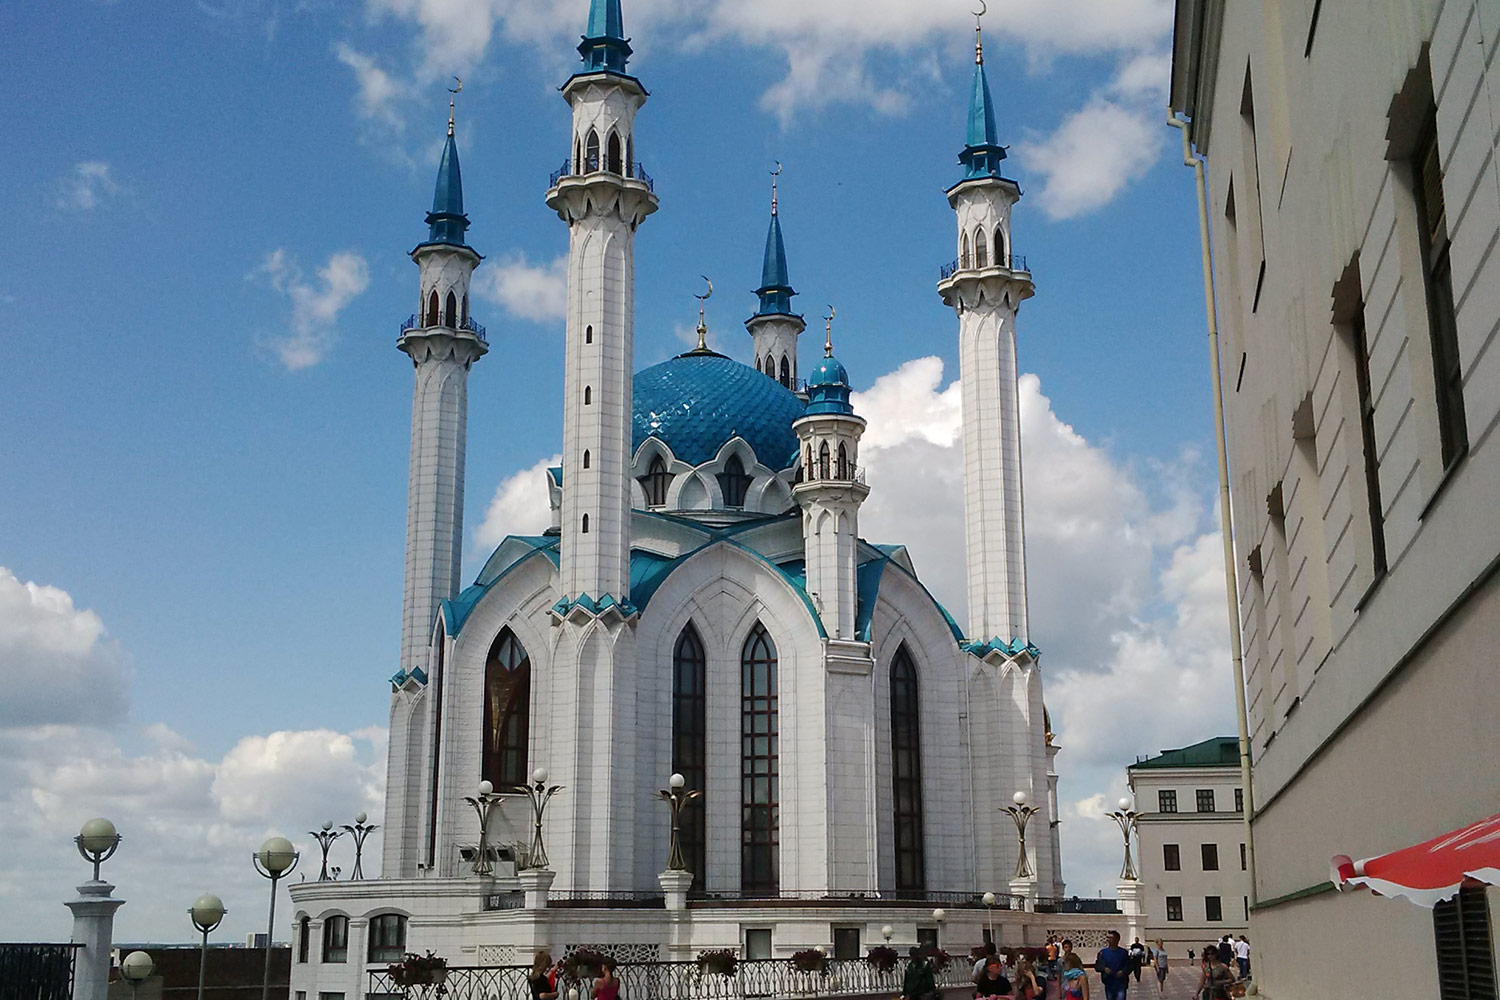 JTA took the Olympic media to Kazan's stunning Qolşärif Mosque during the 2015 FINA World Championships